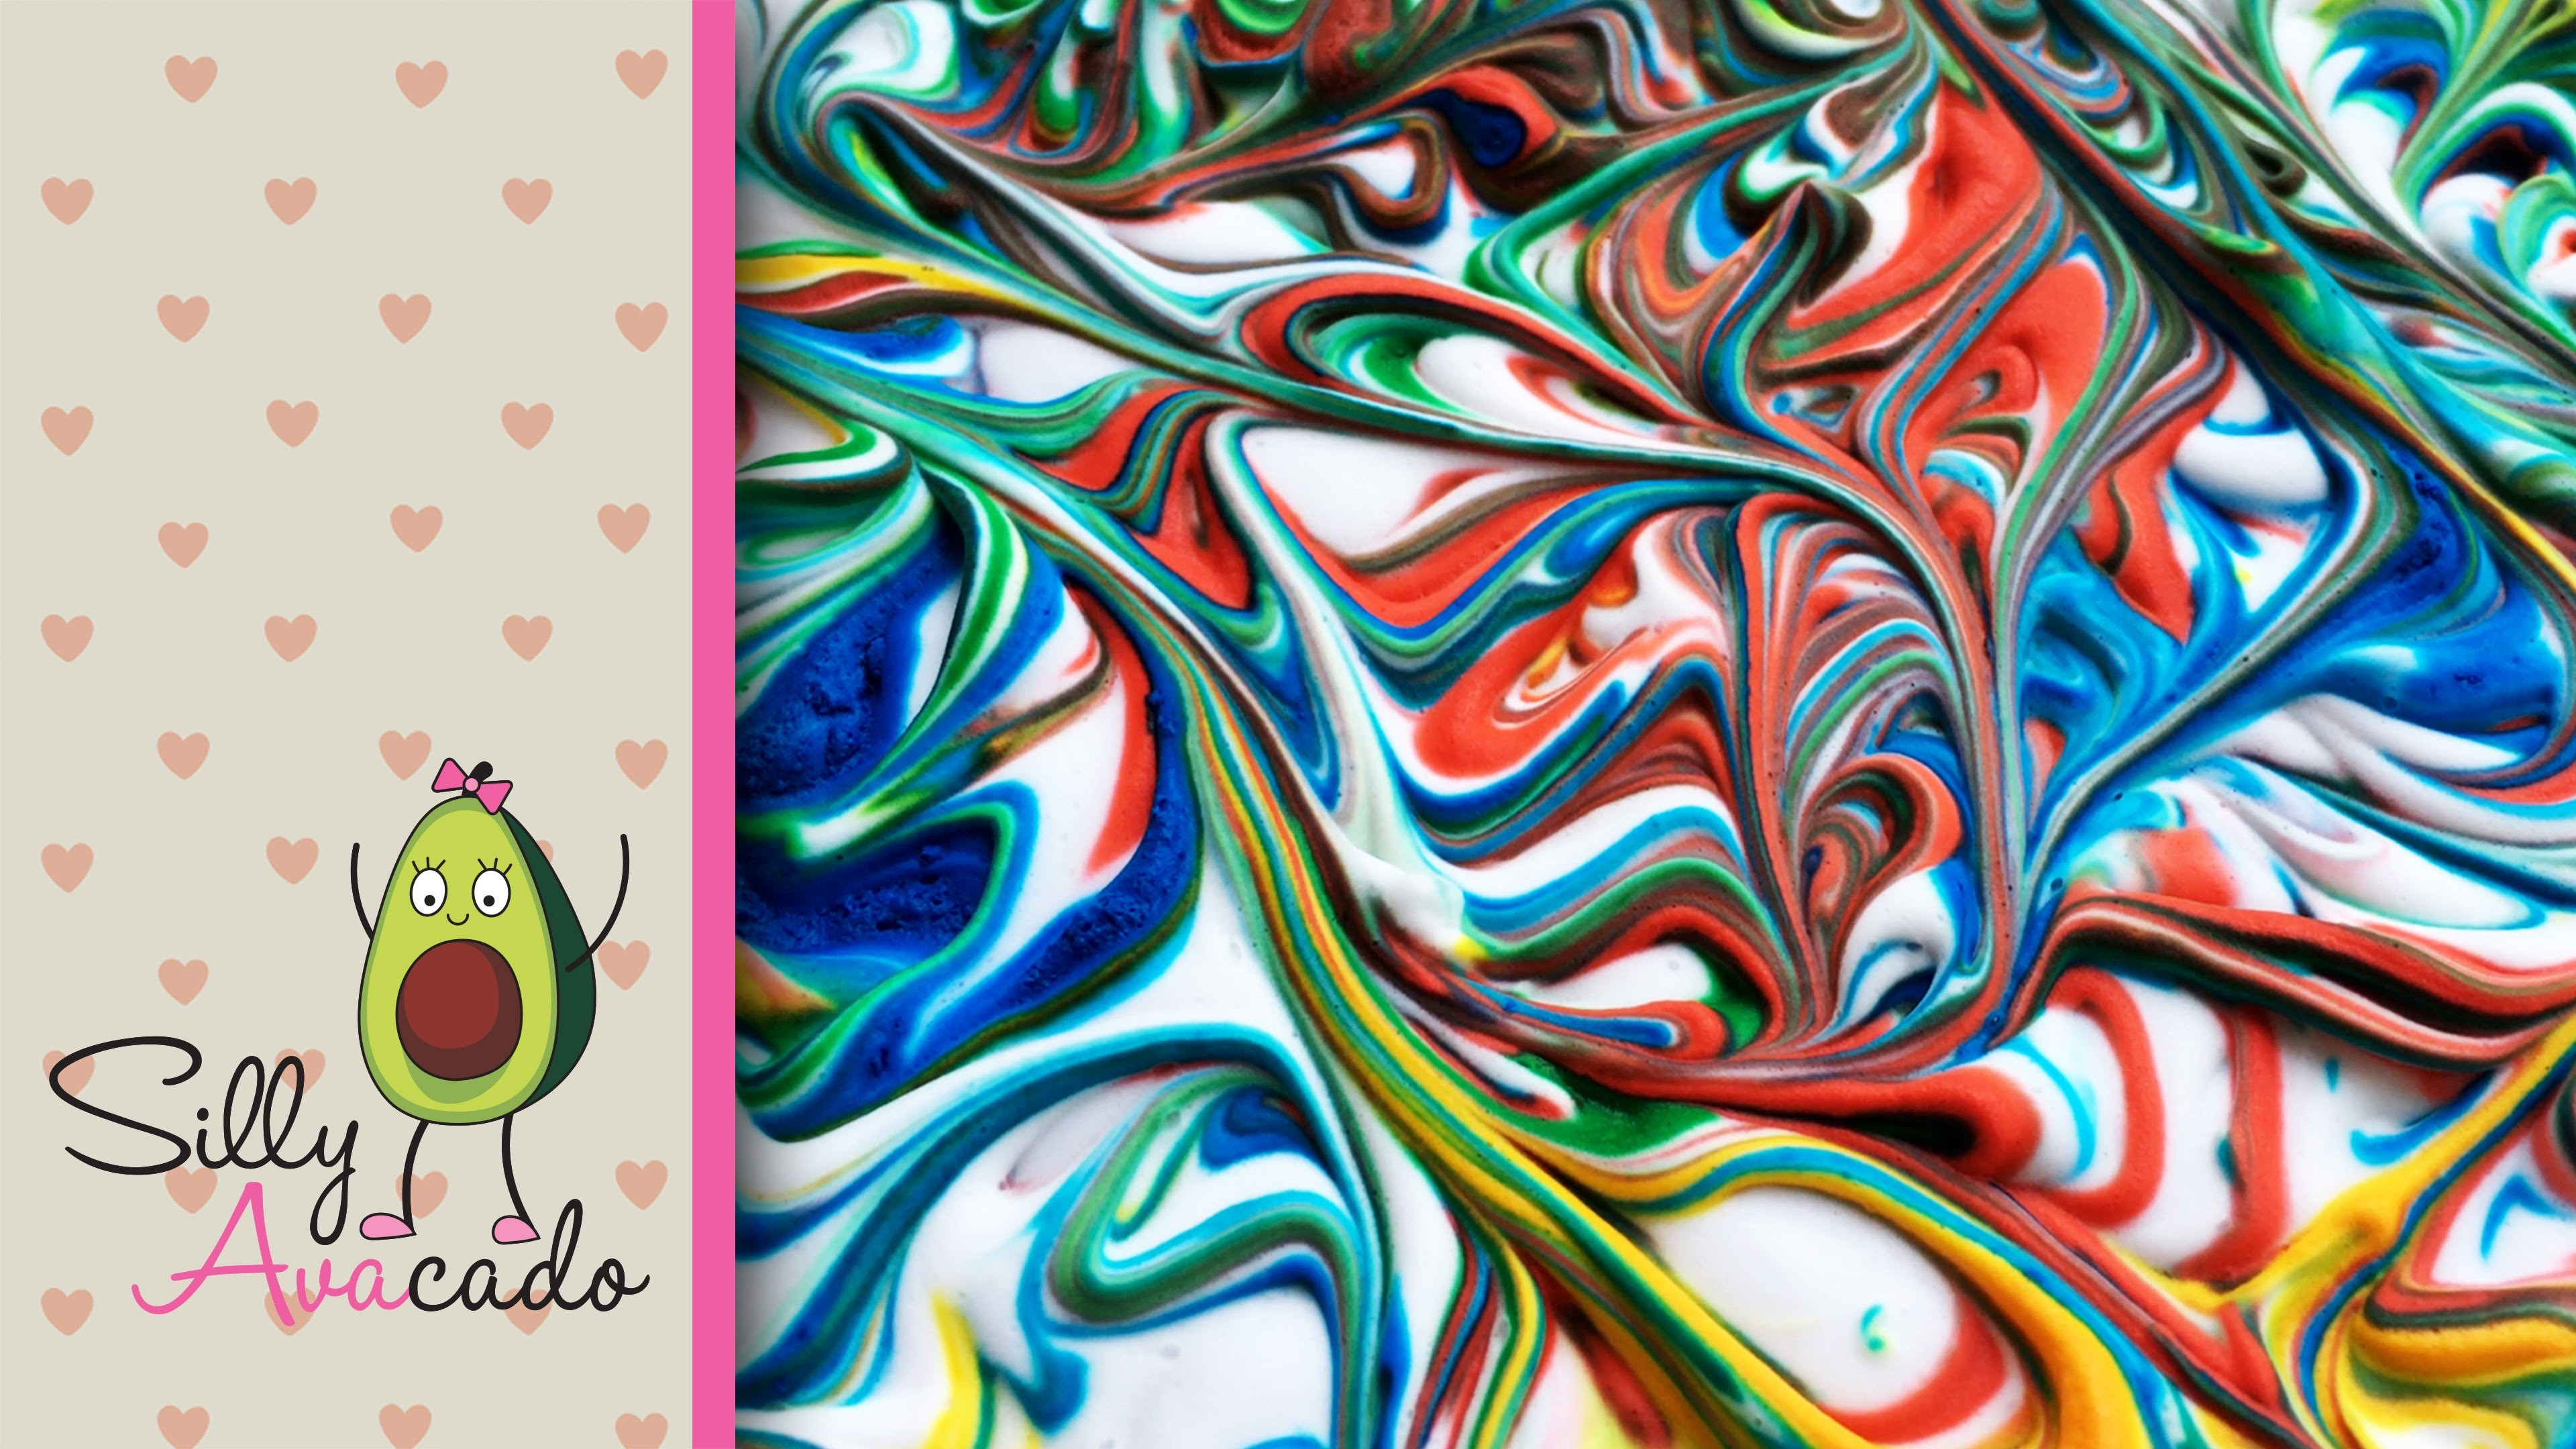 How to Make Marbled Paper w. Shaving Cream ❤ Make Your Own Holiday Wrapping Paper Kid Craft Idea!